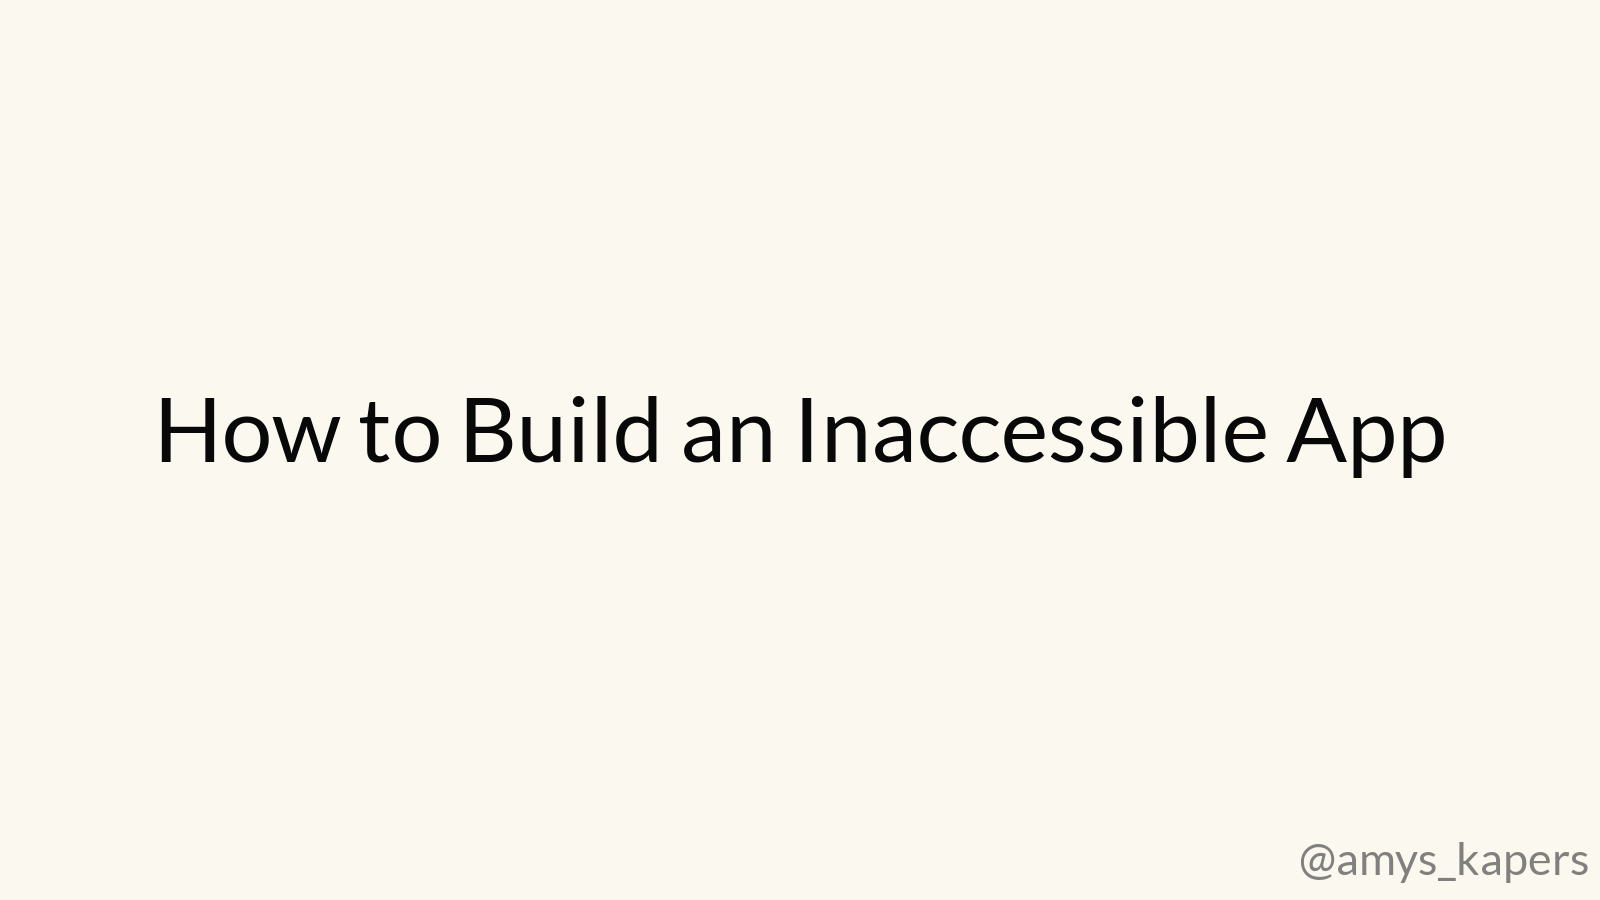 How to Build an Inaccessible App